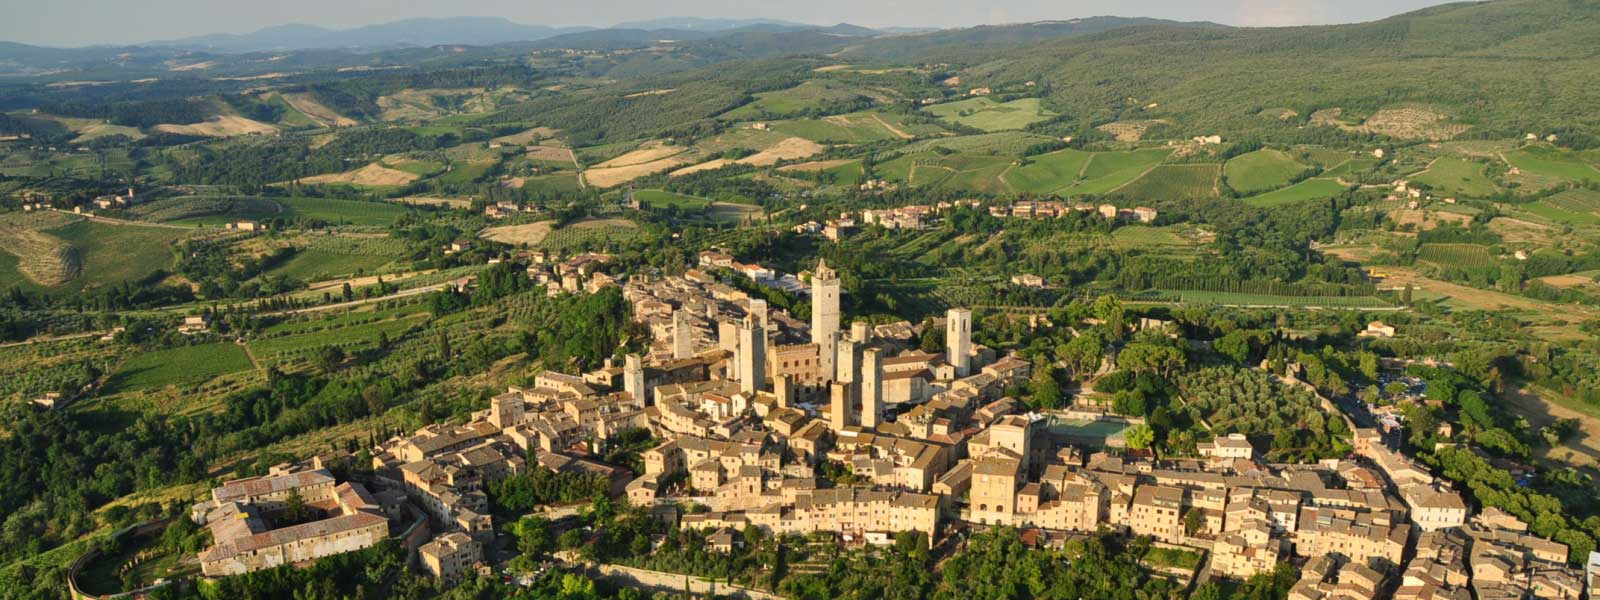 san-gimignano-aerial-view-from-hot-air-balloon